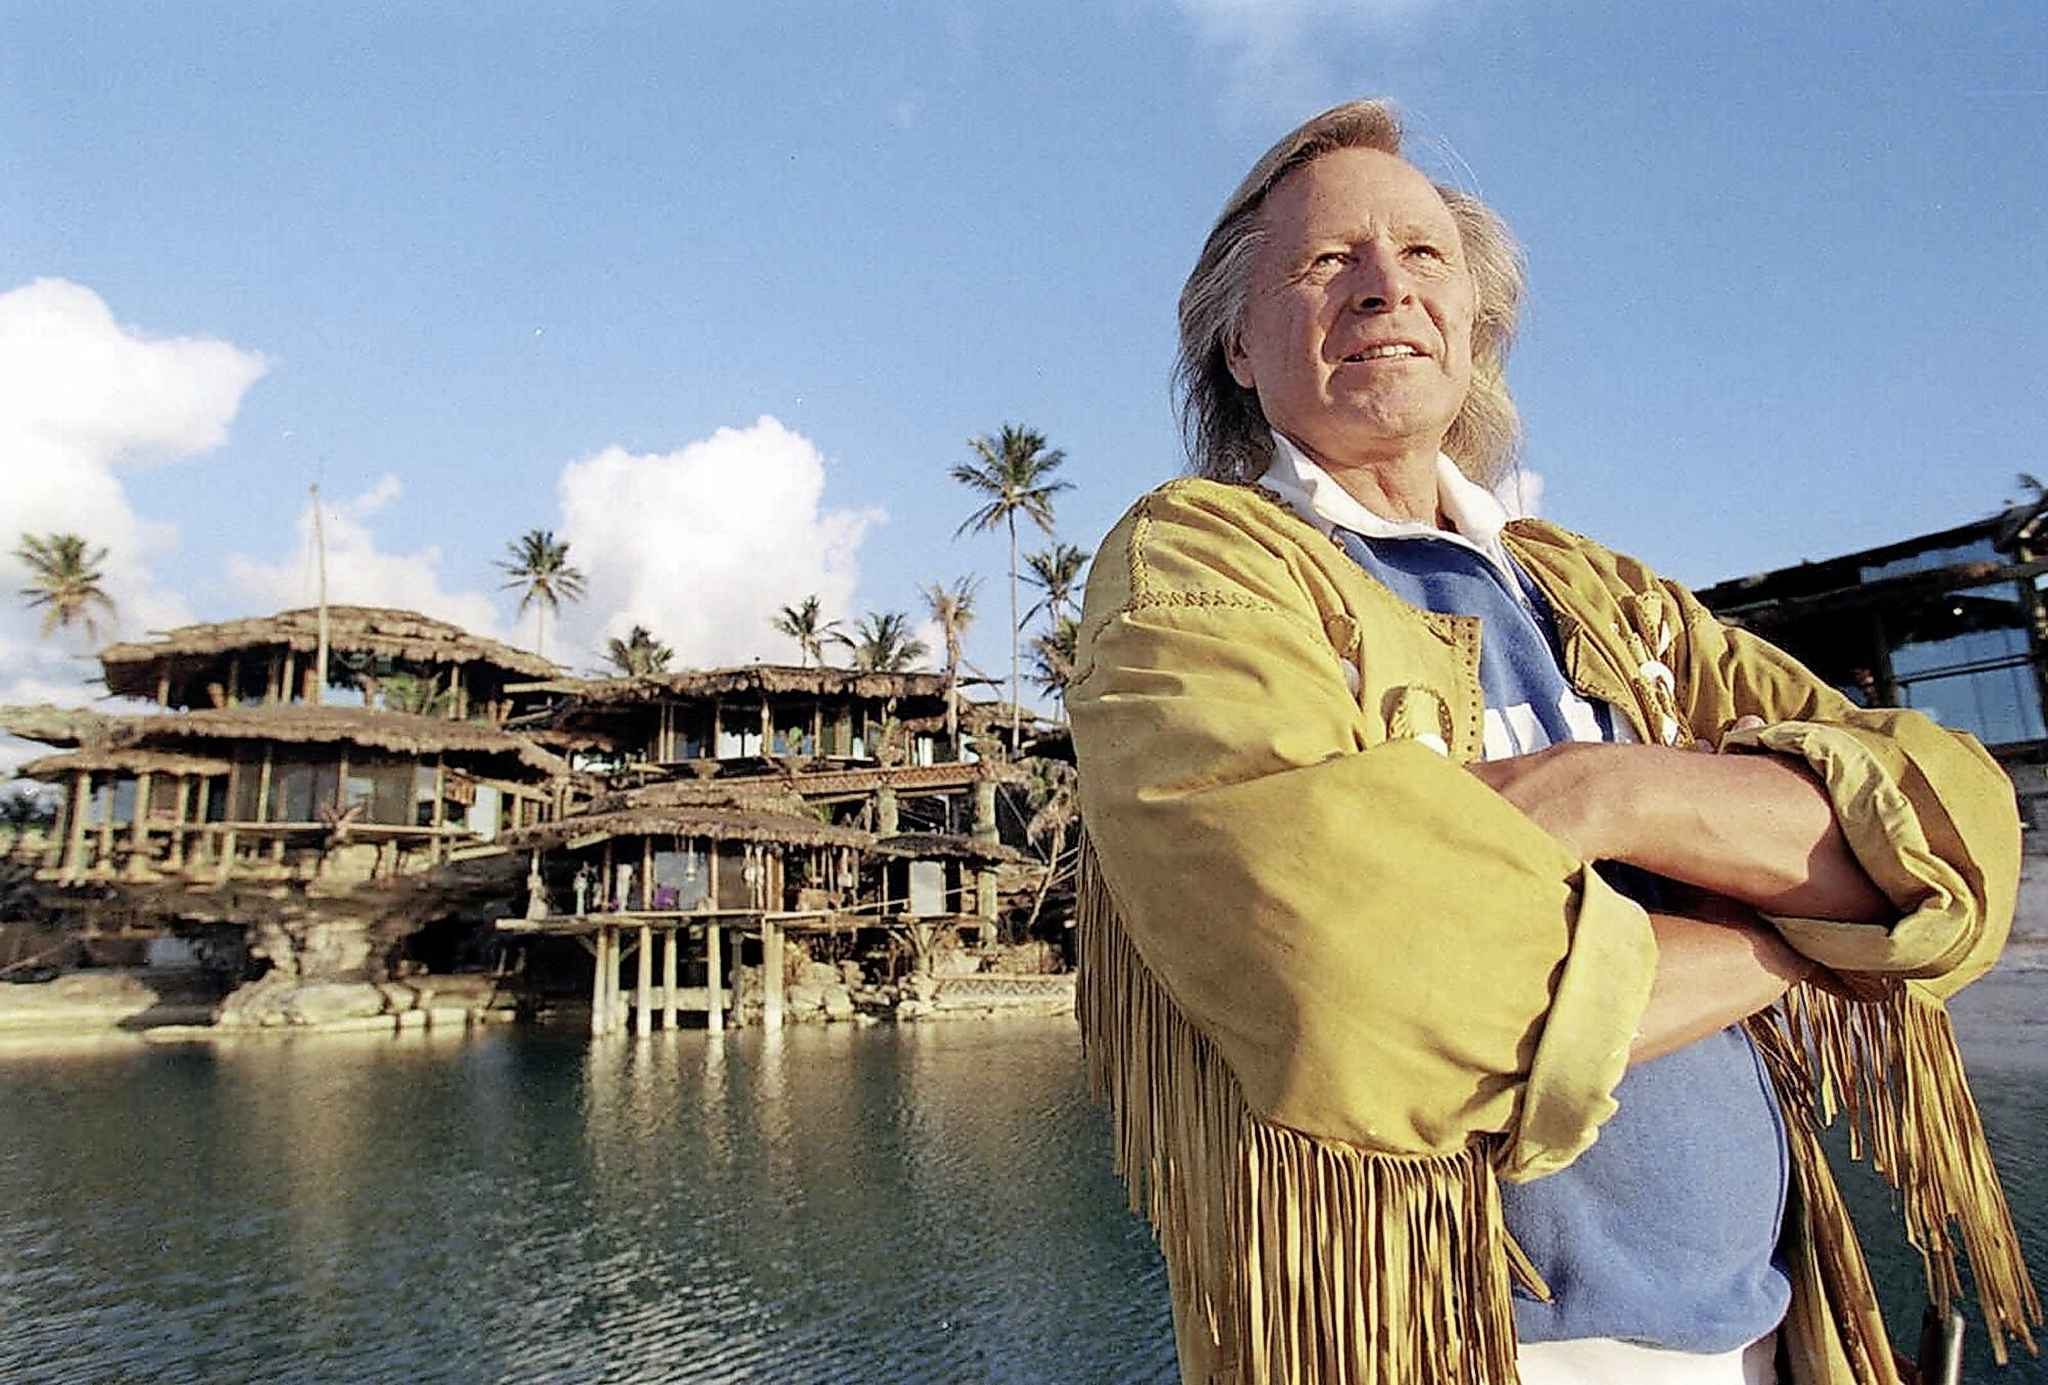 Nygard pictured at his Bahamas home in 2000.